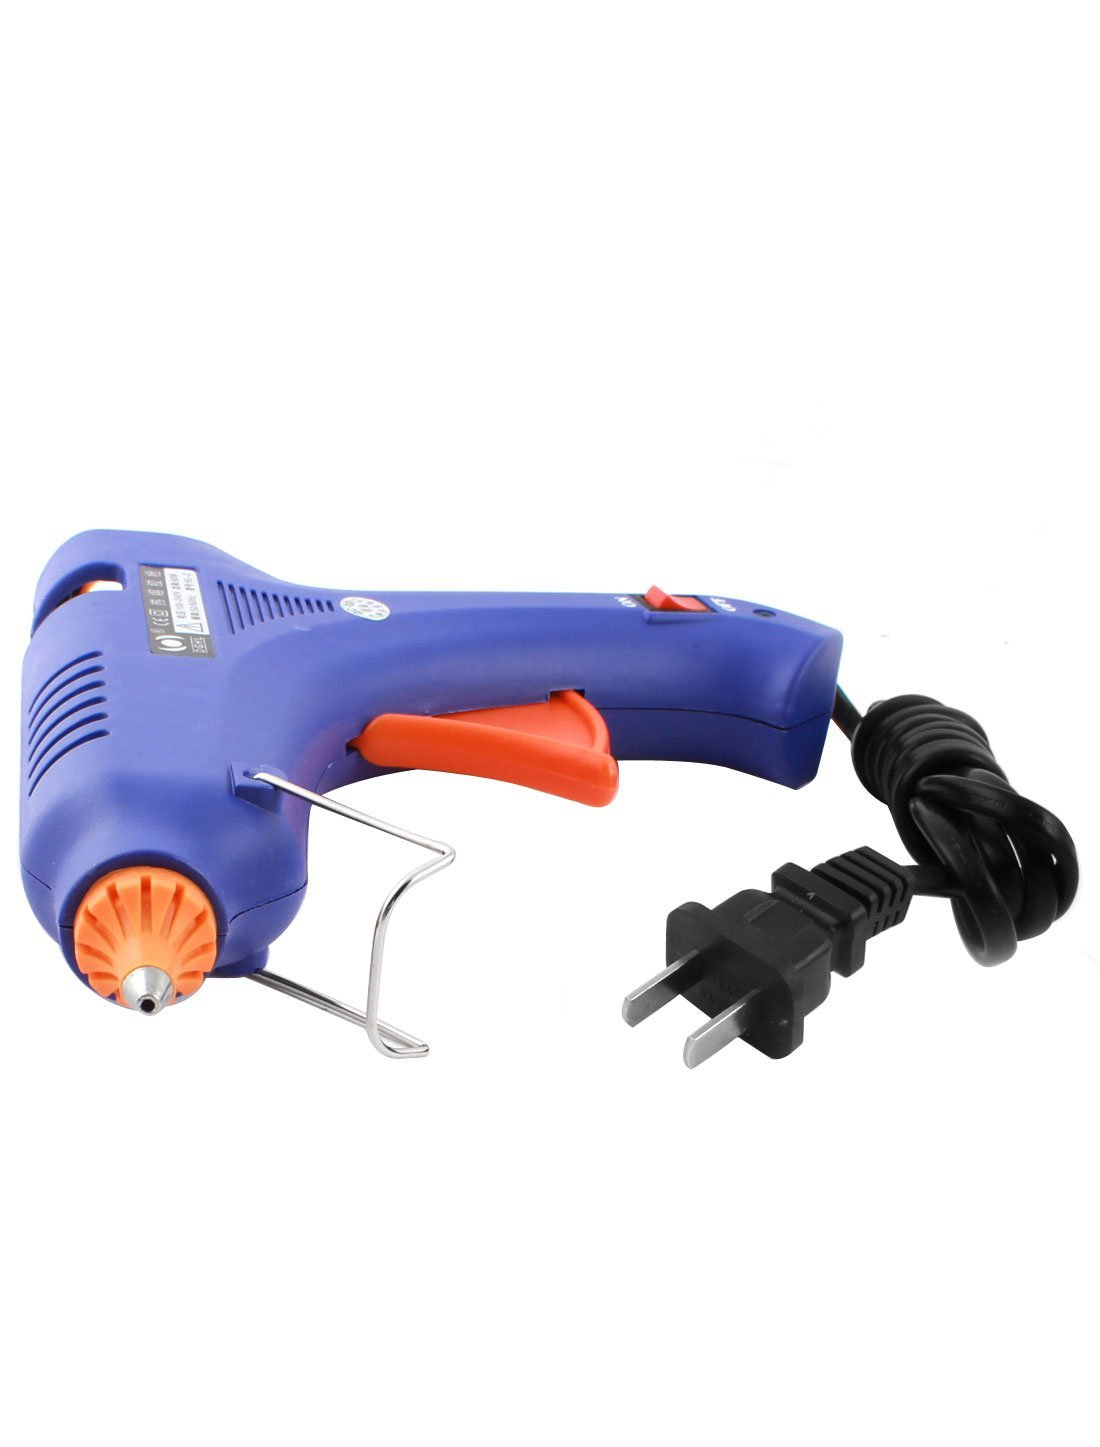 CA 100-240V spina USA 60W 2,5 millimetri conici ugello Hot Melt Glue Gun HL-C